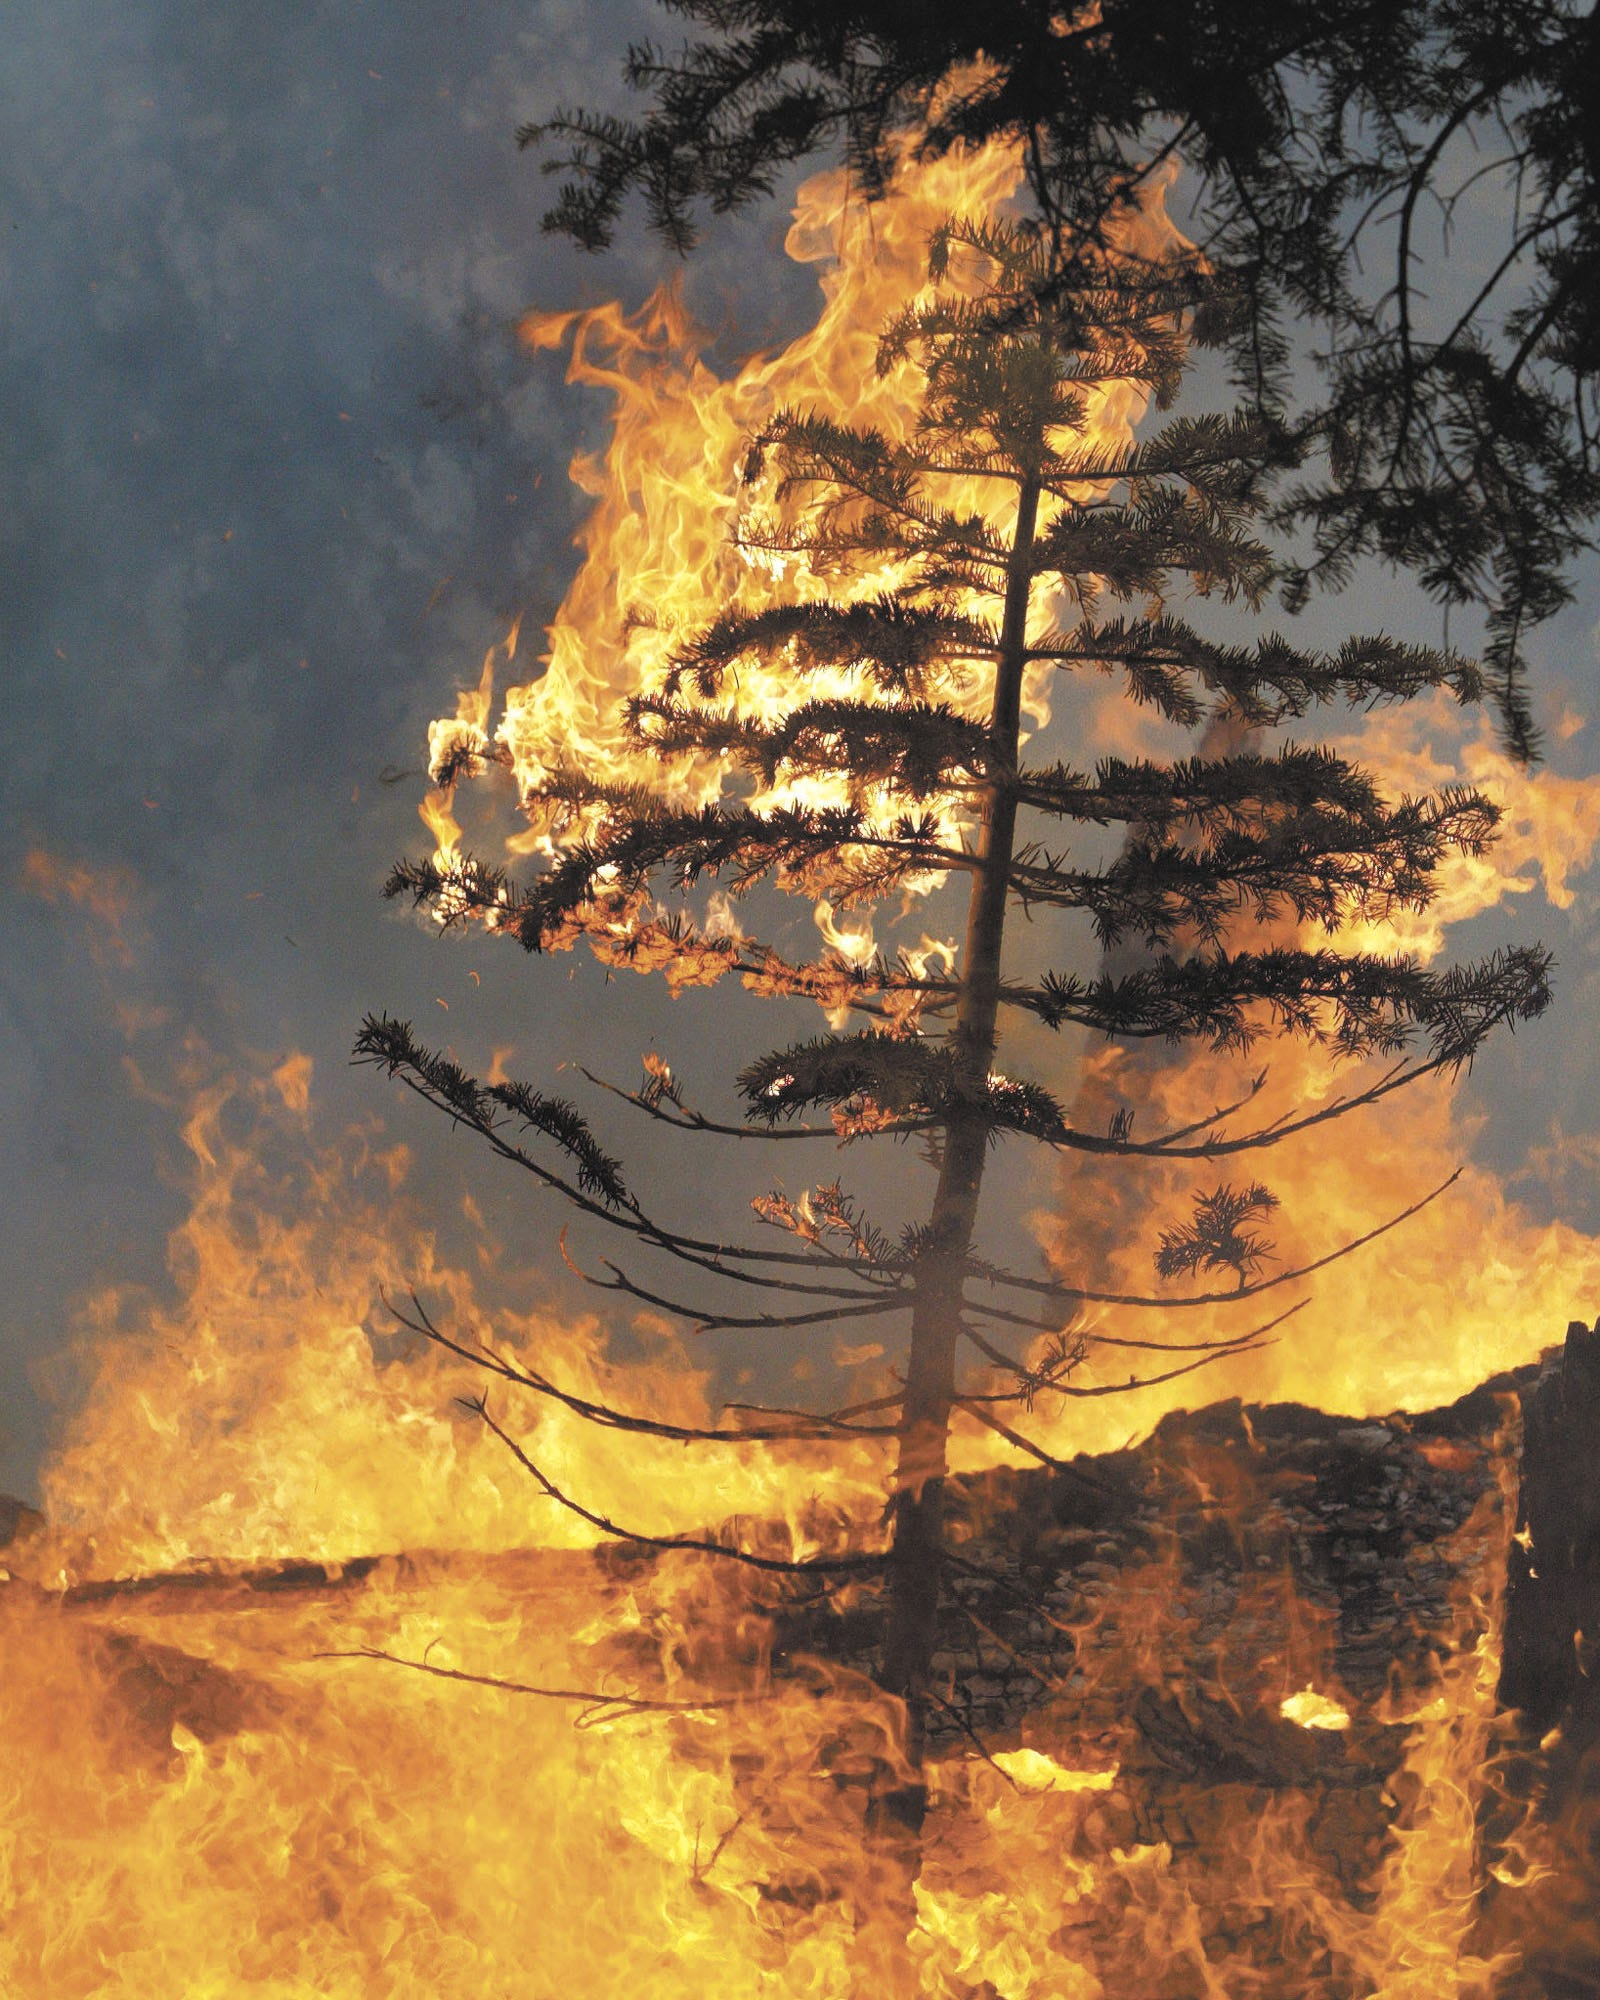 A sapling bursts into flame at the top of Angora Ridge in South Lake Tahoe, Calif. on Monday evening, June 25, 2007, as the Angora Fire continued to burn. Efforts to tame the wildfire that has destroyed some 200 homes near Lake Tahoe suffered a setback Tuesday when a backfire set by firefighters to control the blaze jumped a fireline, forcing a new round of evacuations, authorities said.(AP Photo/Tahoe Daily Tribune, Dan Thrift)